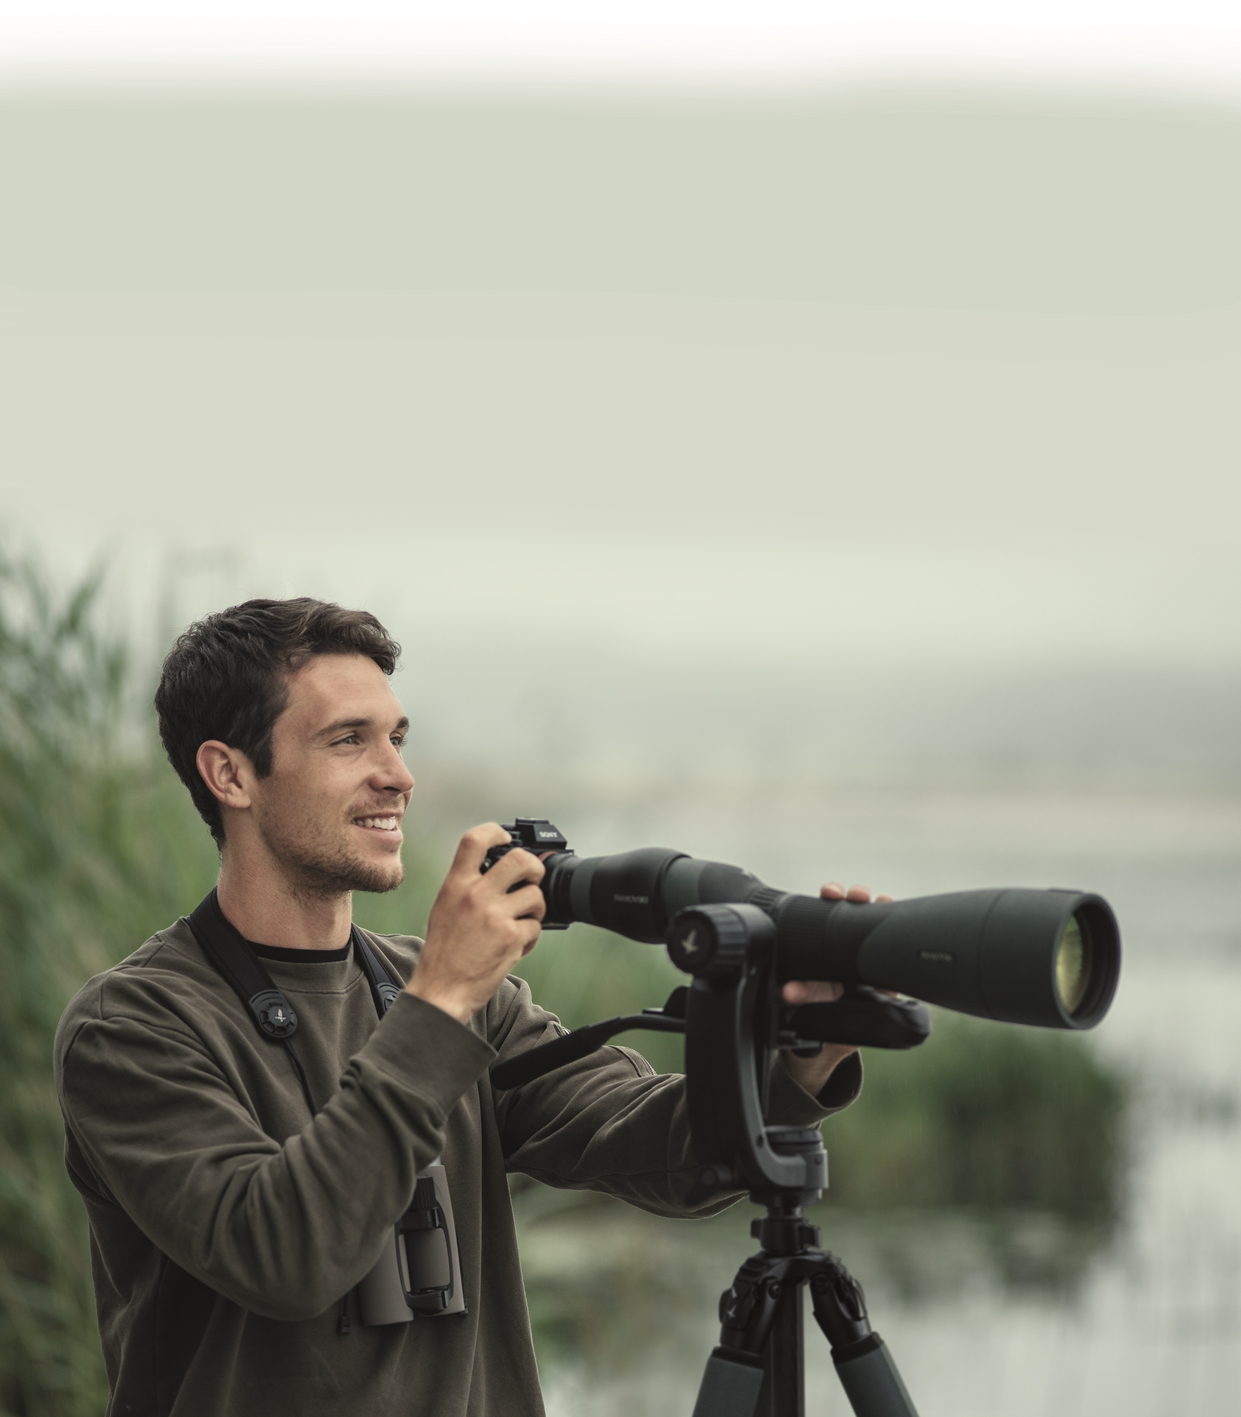 Straight Scopes for Birdwatching